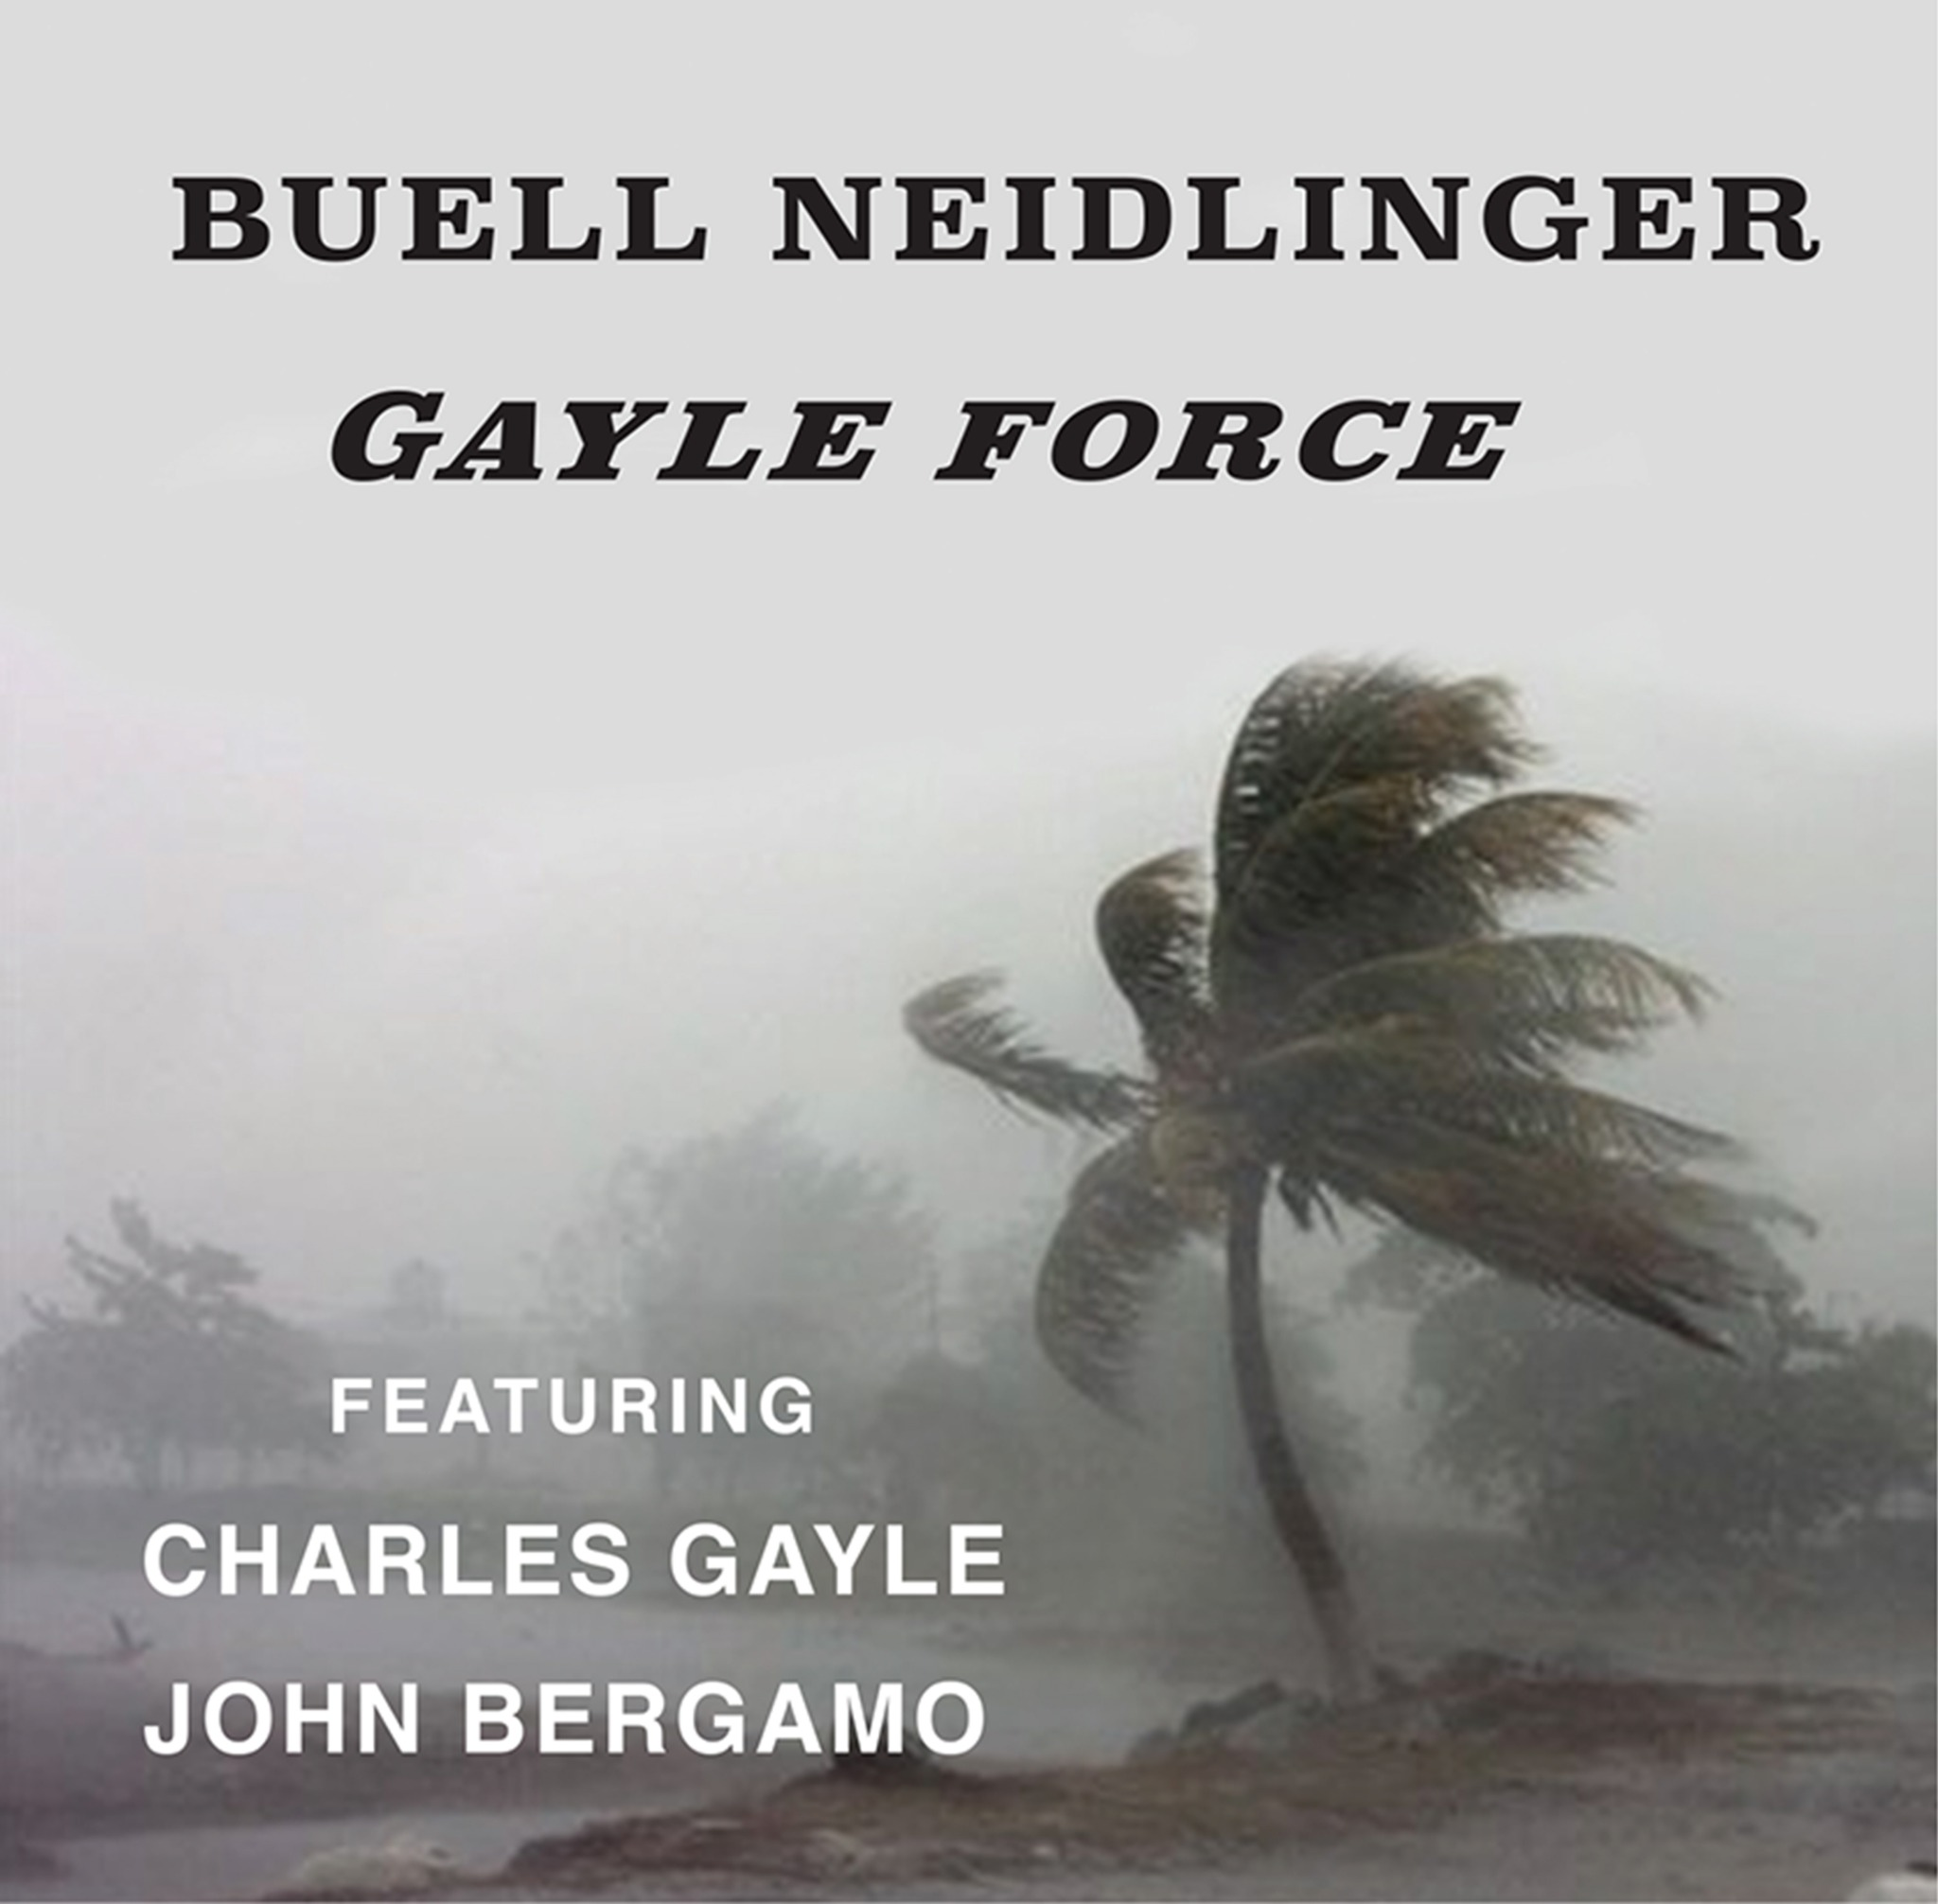 Buell Neidlinger - Gayle Force CD featuring Charles Gayle